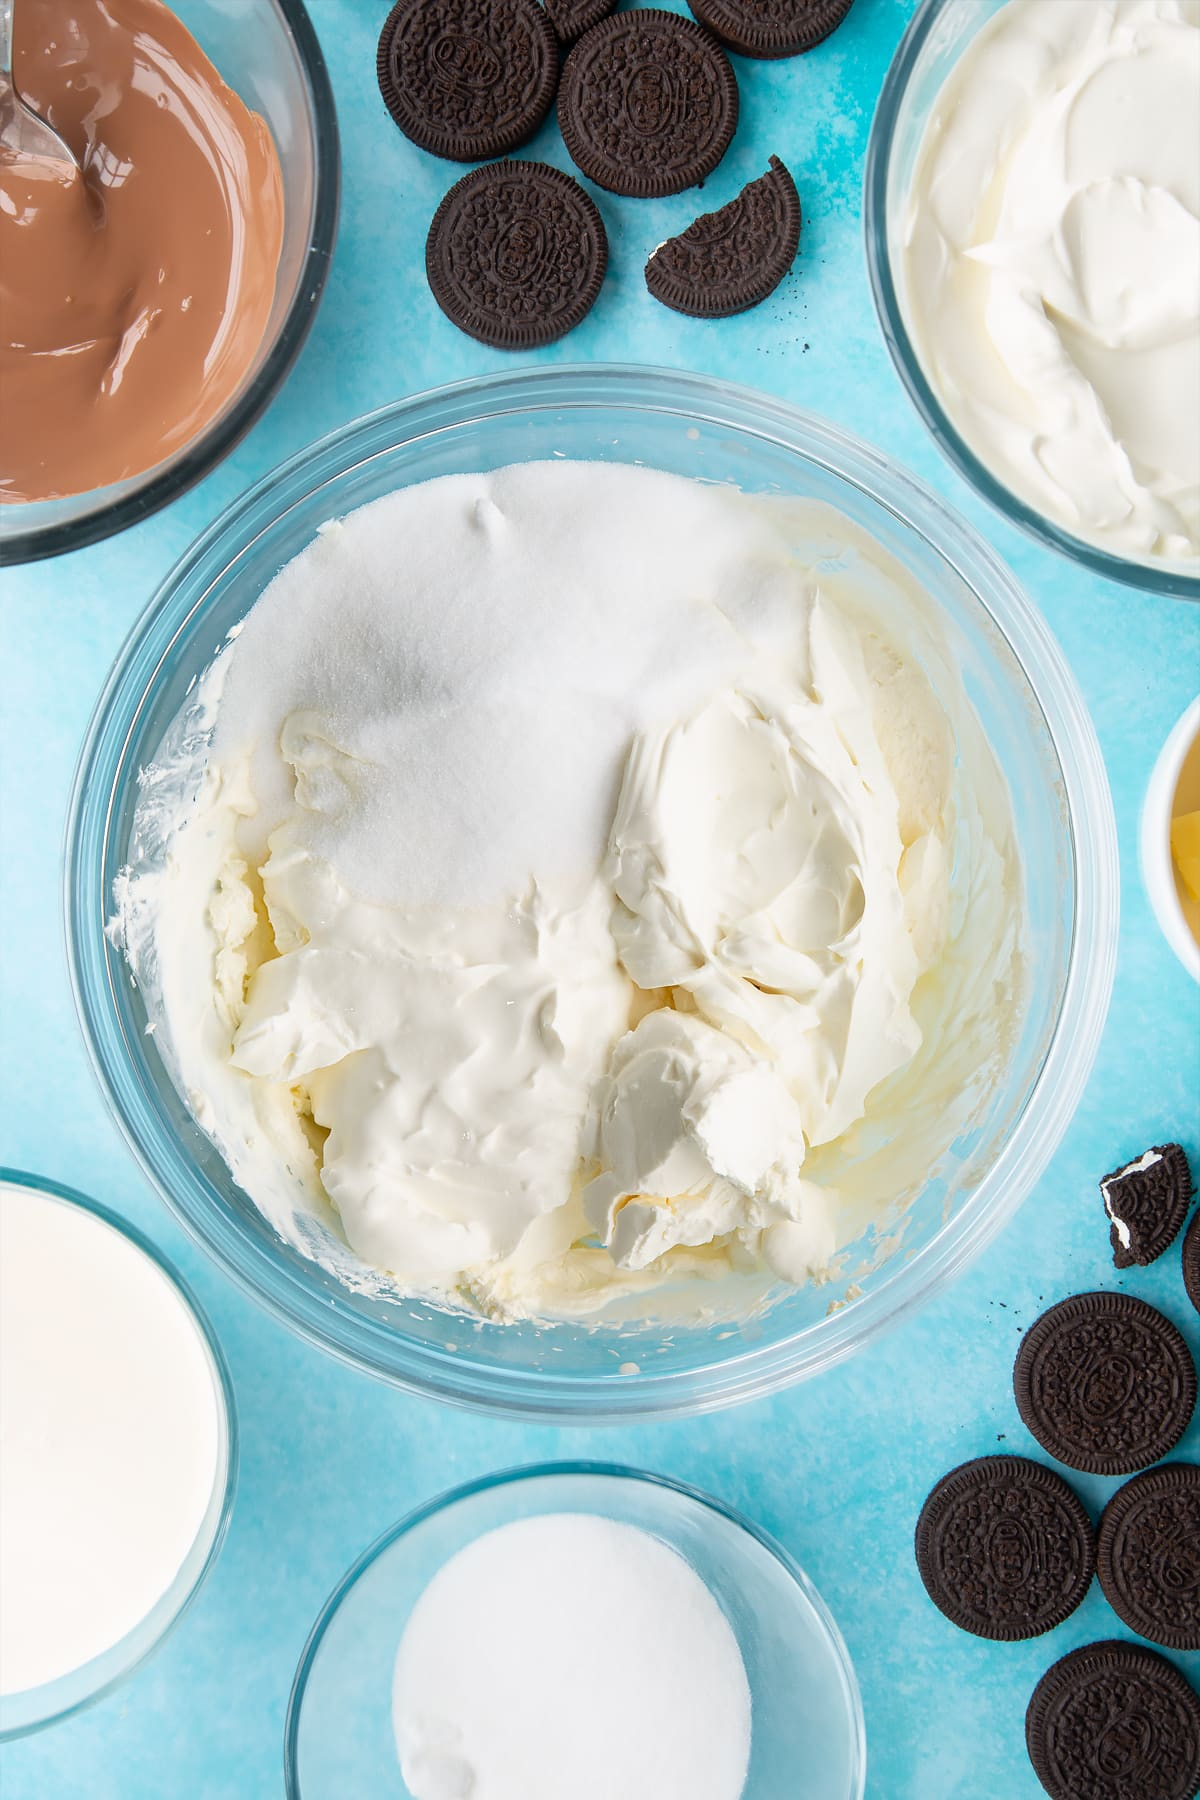 Overhead shot of whipped cream, cream, sugar and cream cheese in a large clear bowl